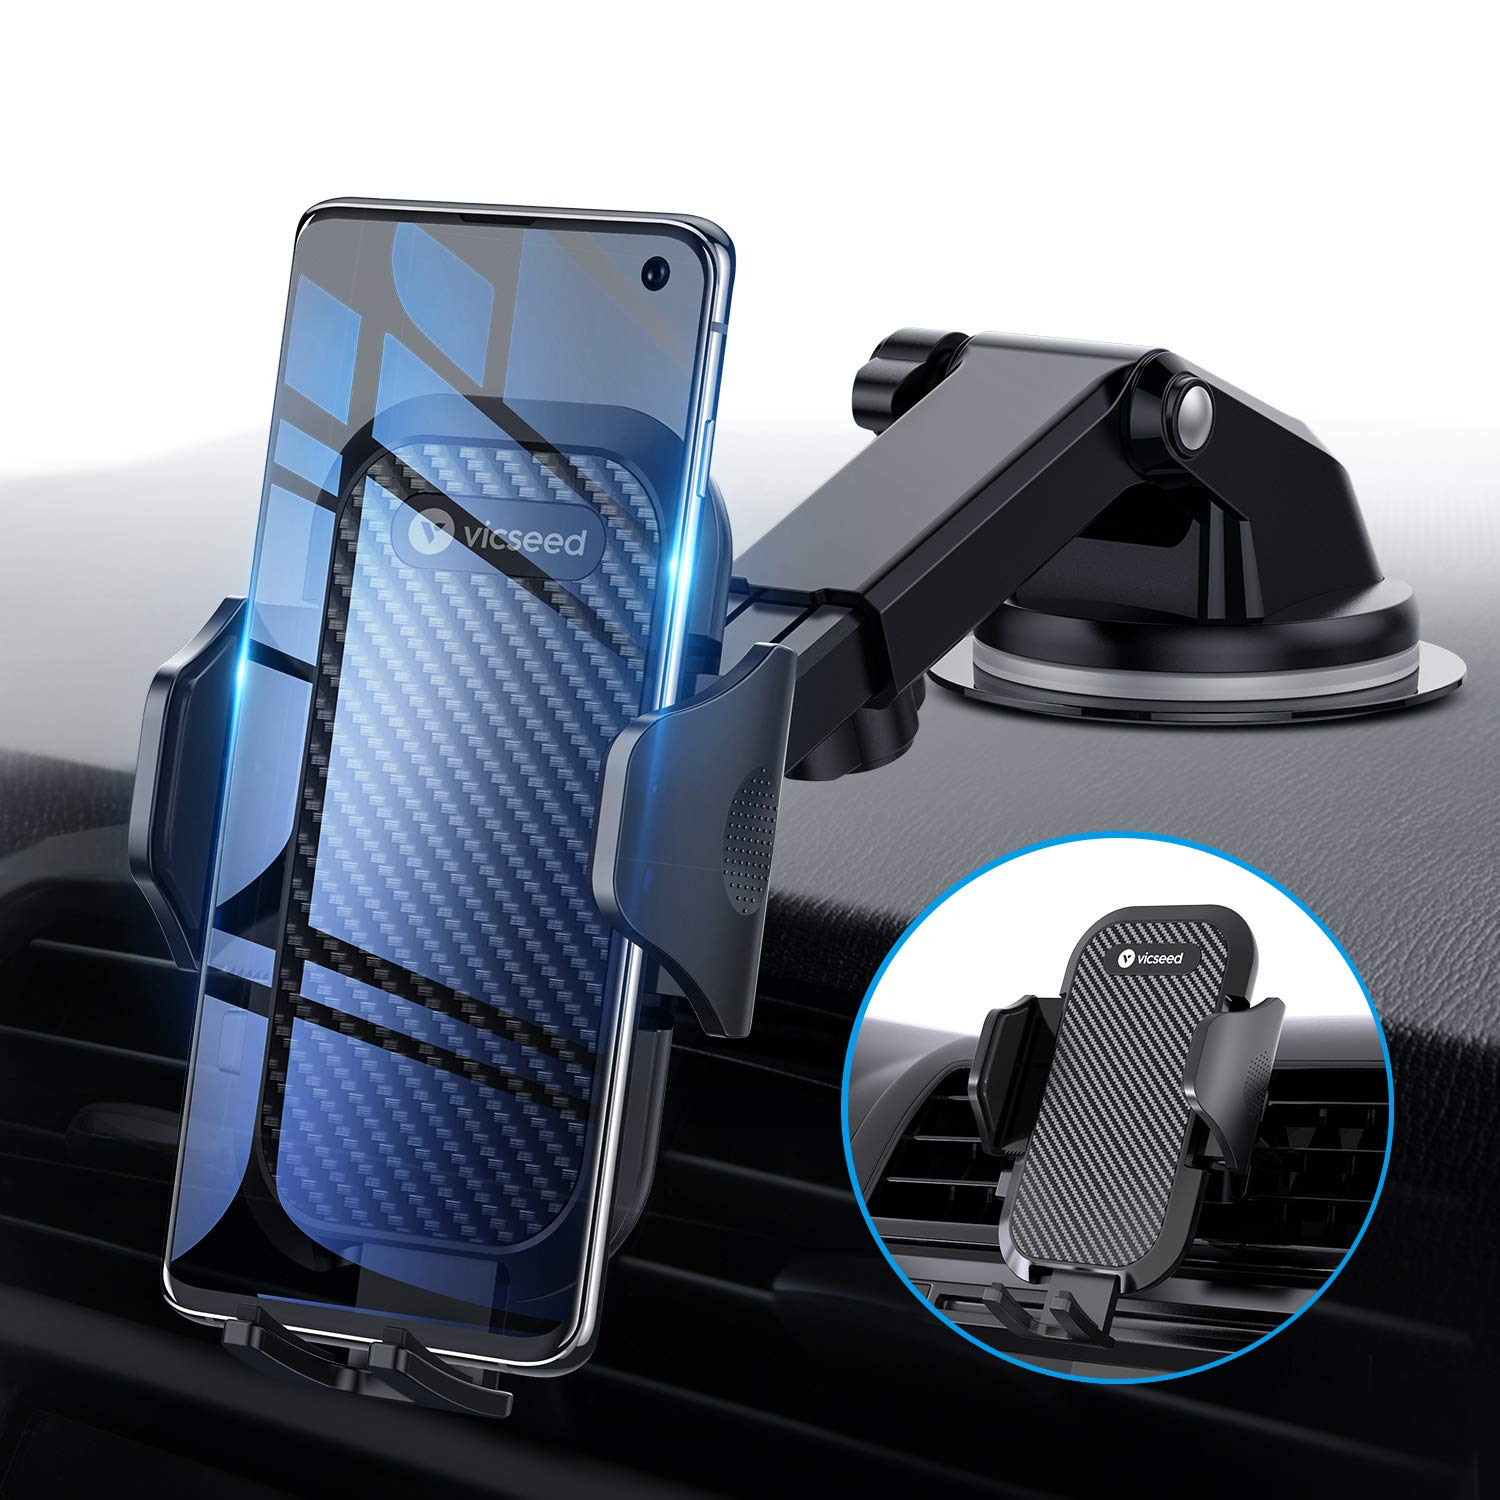 Universal Car Phone Mount VICSEED Car Phone Holder for Car Dashboard Windshield Air Vent Long Arm Strong Suction Cell Phone Car Mount Compatible with iPhone 11 Pro X XS Max XR Galaxy Note10 S10